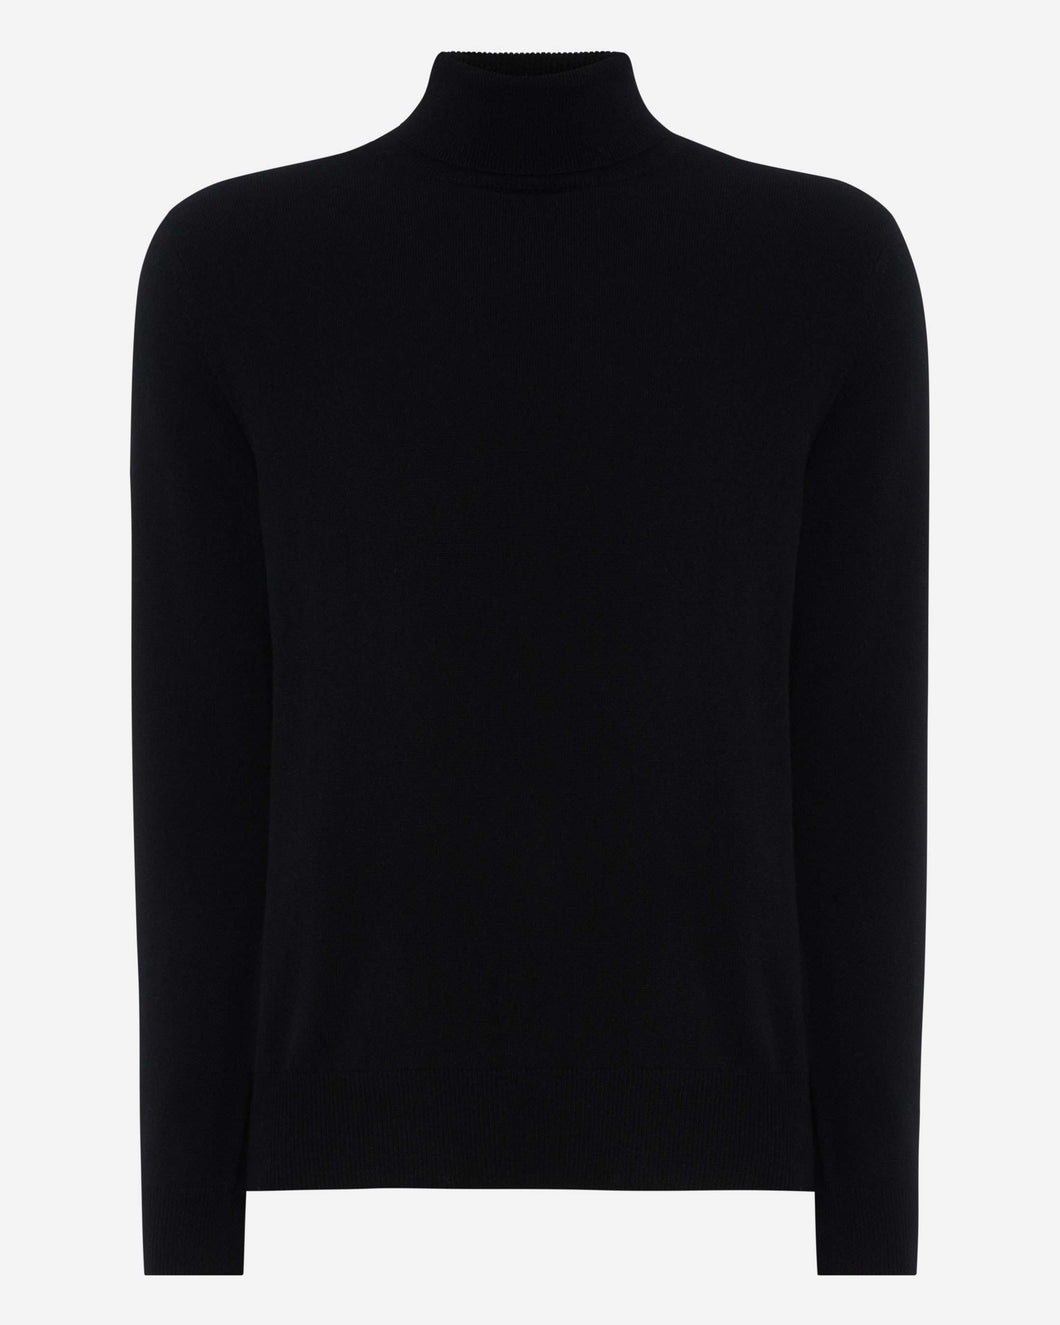 The Trafalgar Polo Neck Cashmere Jumper Black